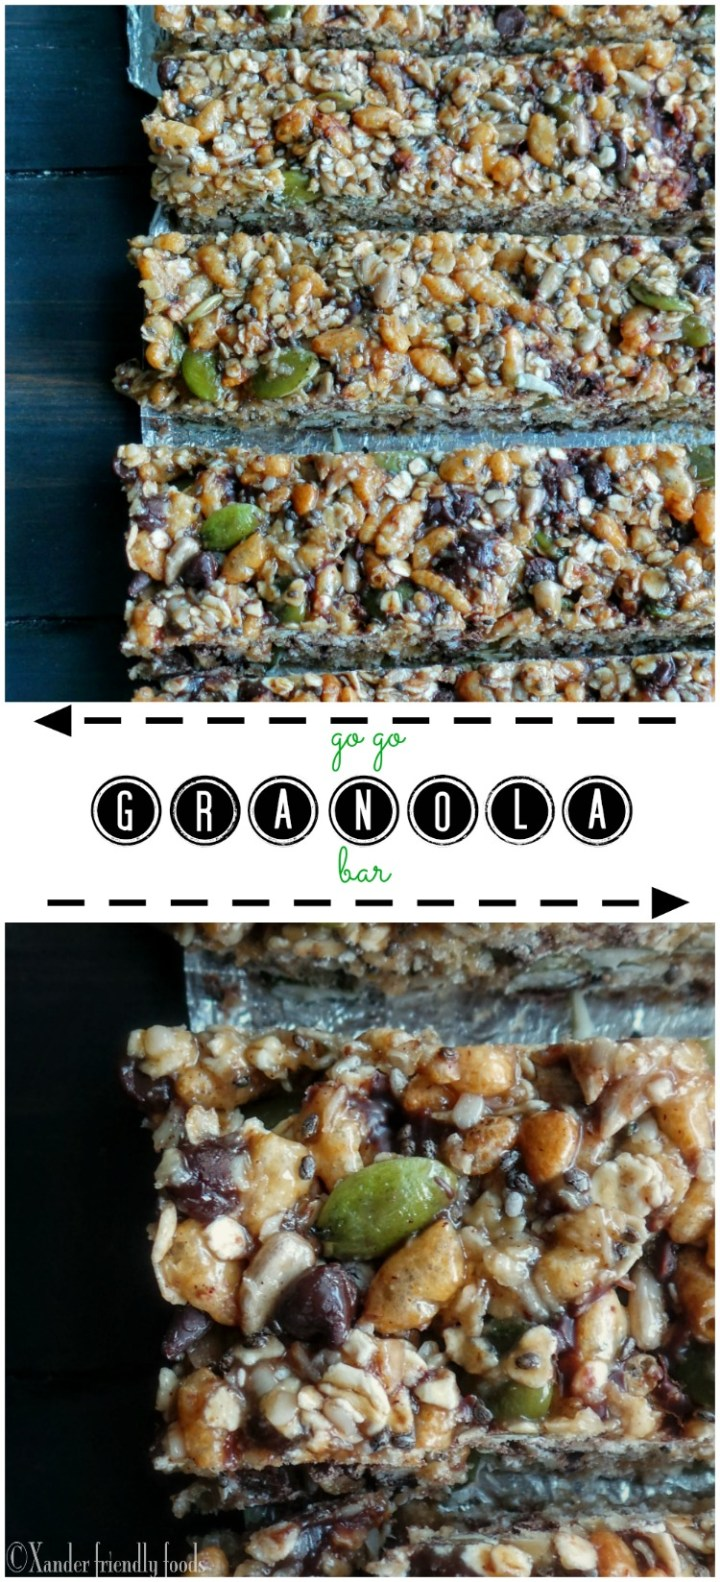 Homemade granola bar, loaded with only good stuff. Top 8 free!